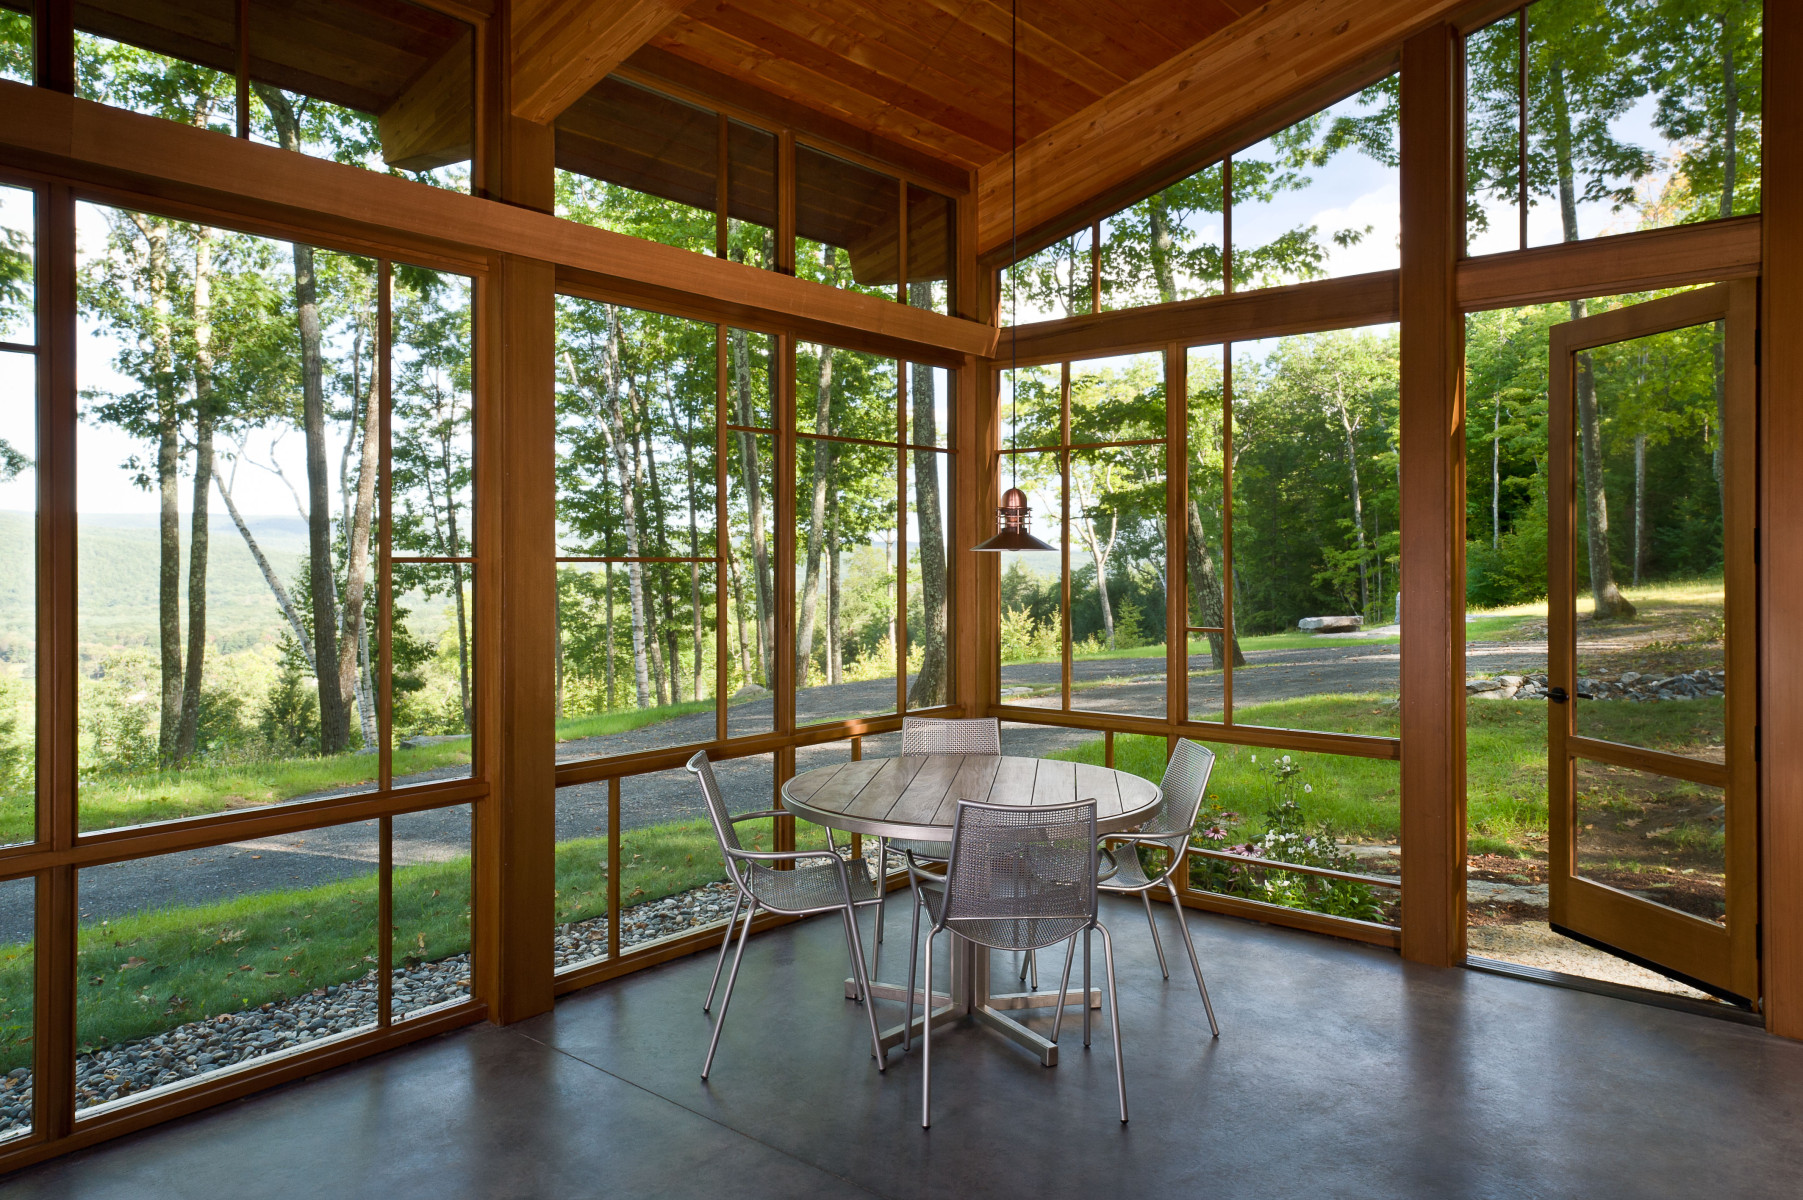 GB-modern-Cabin-SE-screen-porch